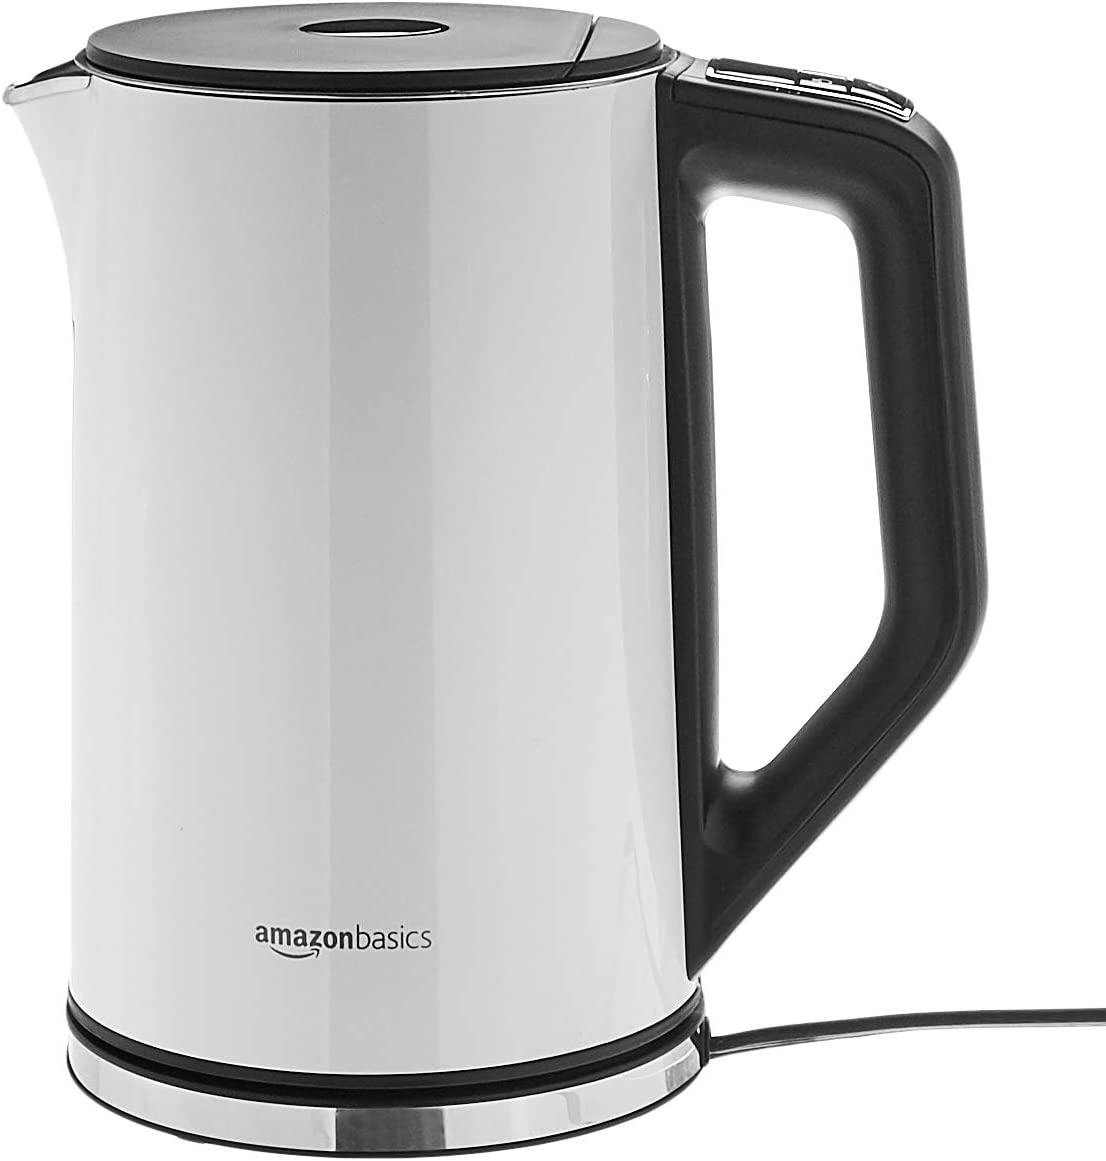 AmazonBasics Cool-Touch Stainless Steel Kettle with Temperature Control, 1.5L, White